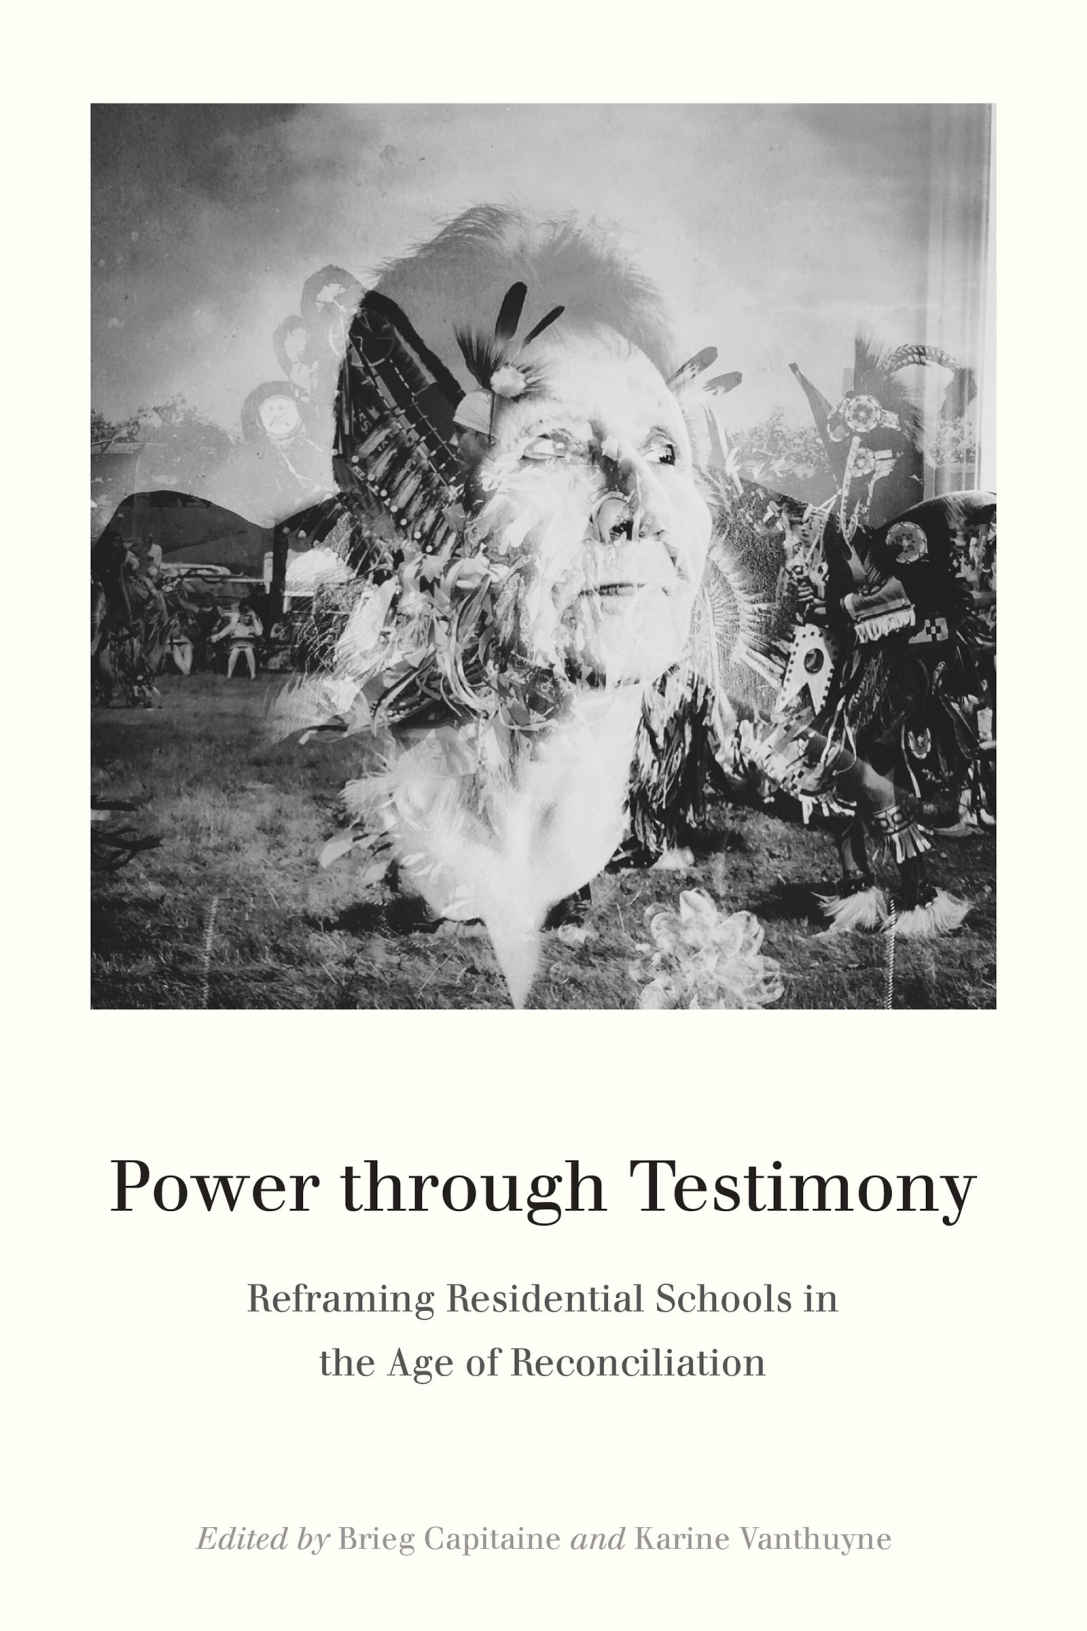 Power through Testimony. Reframing Residential Schools in the Age of Reconciliation